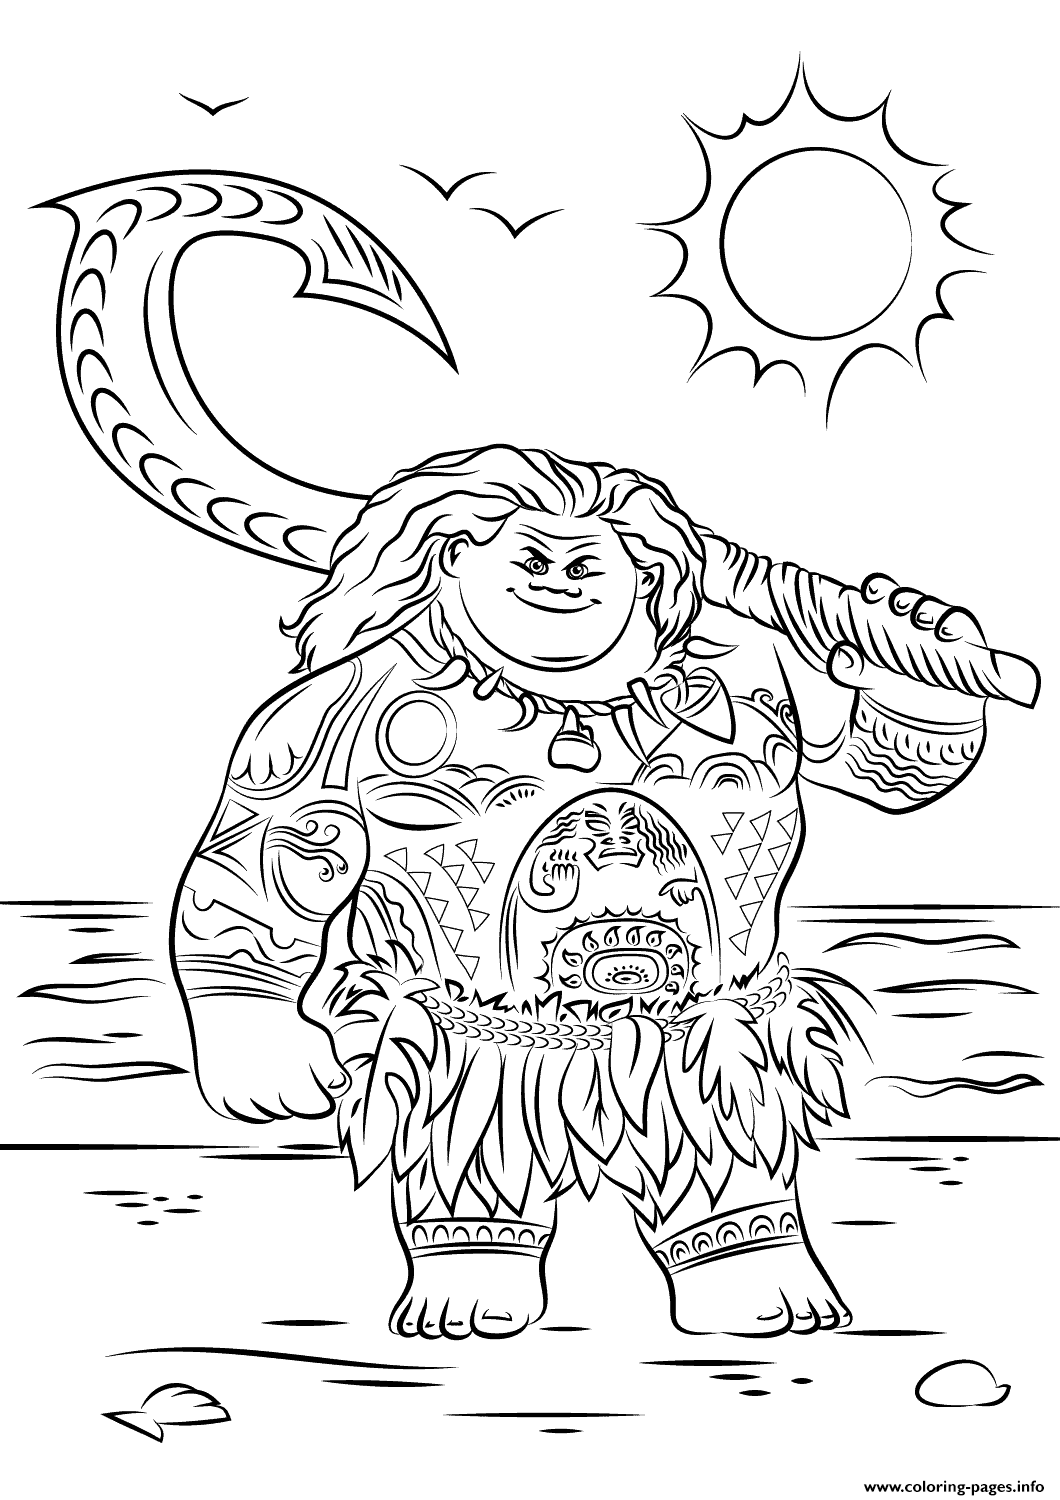 Maui From Moana Disney Coloring Pages Print Download 407 Prints